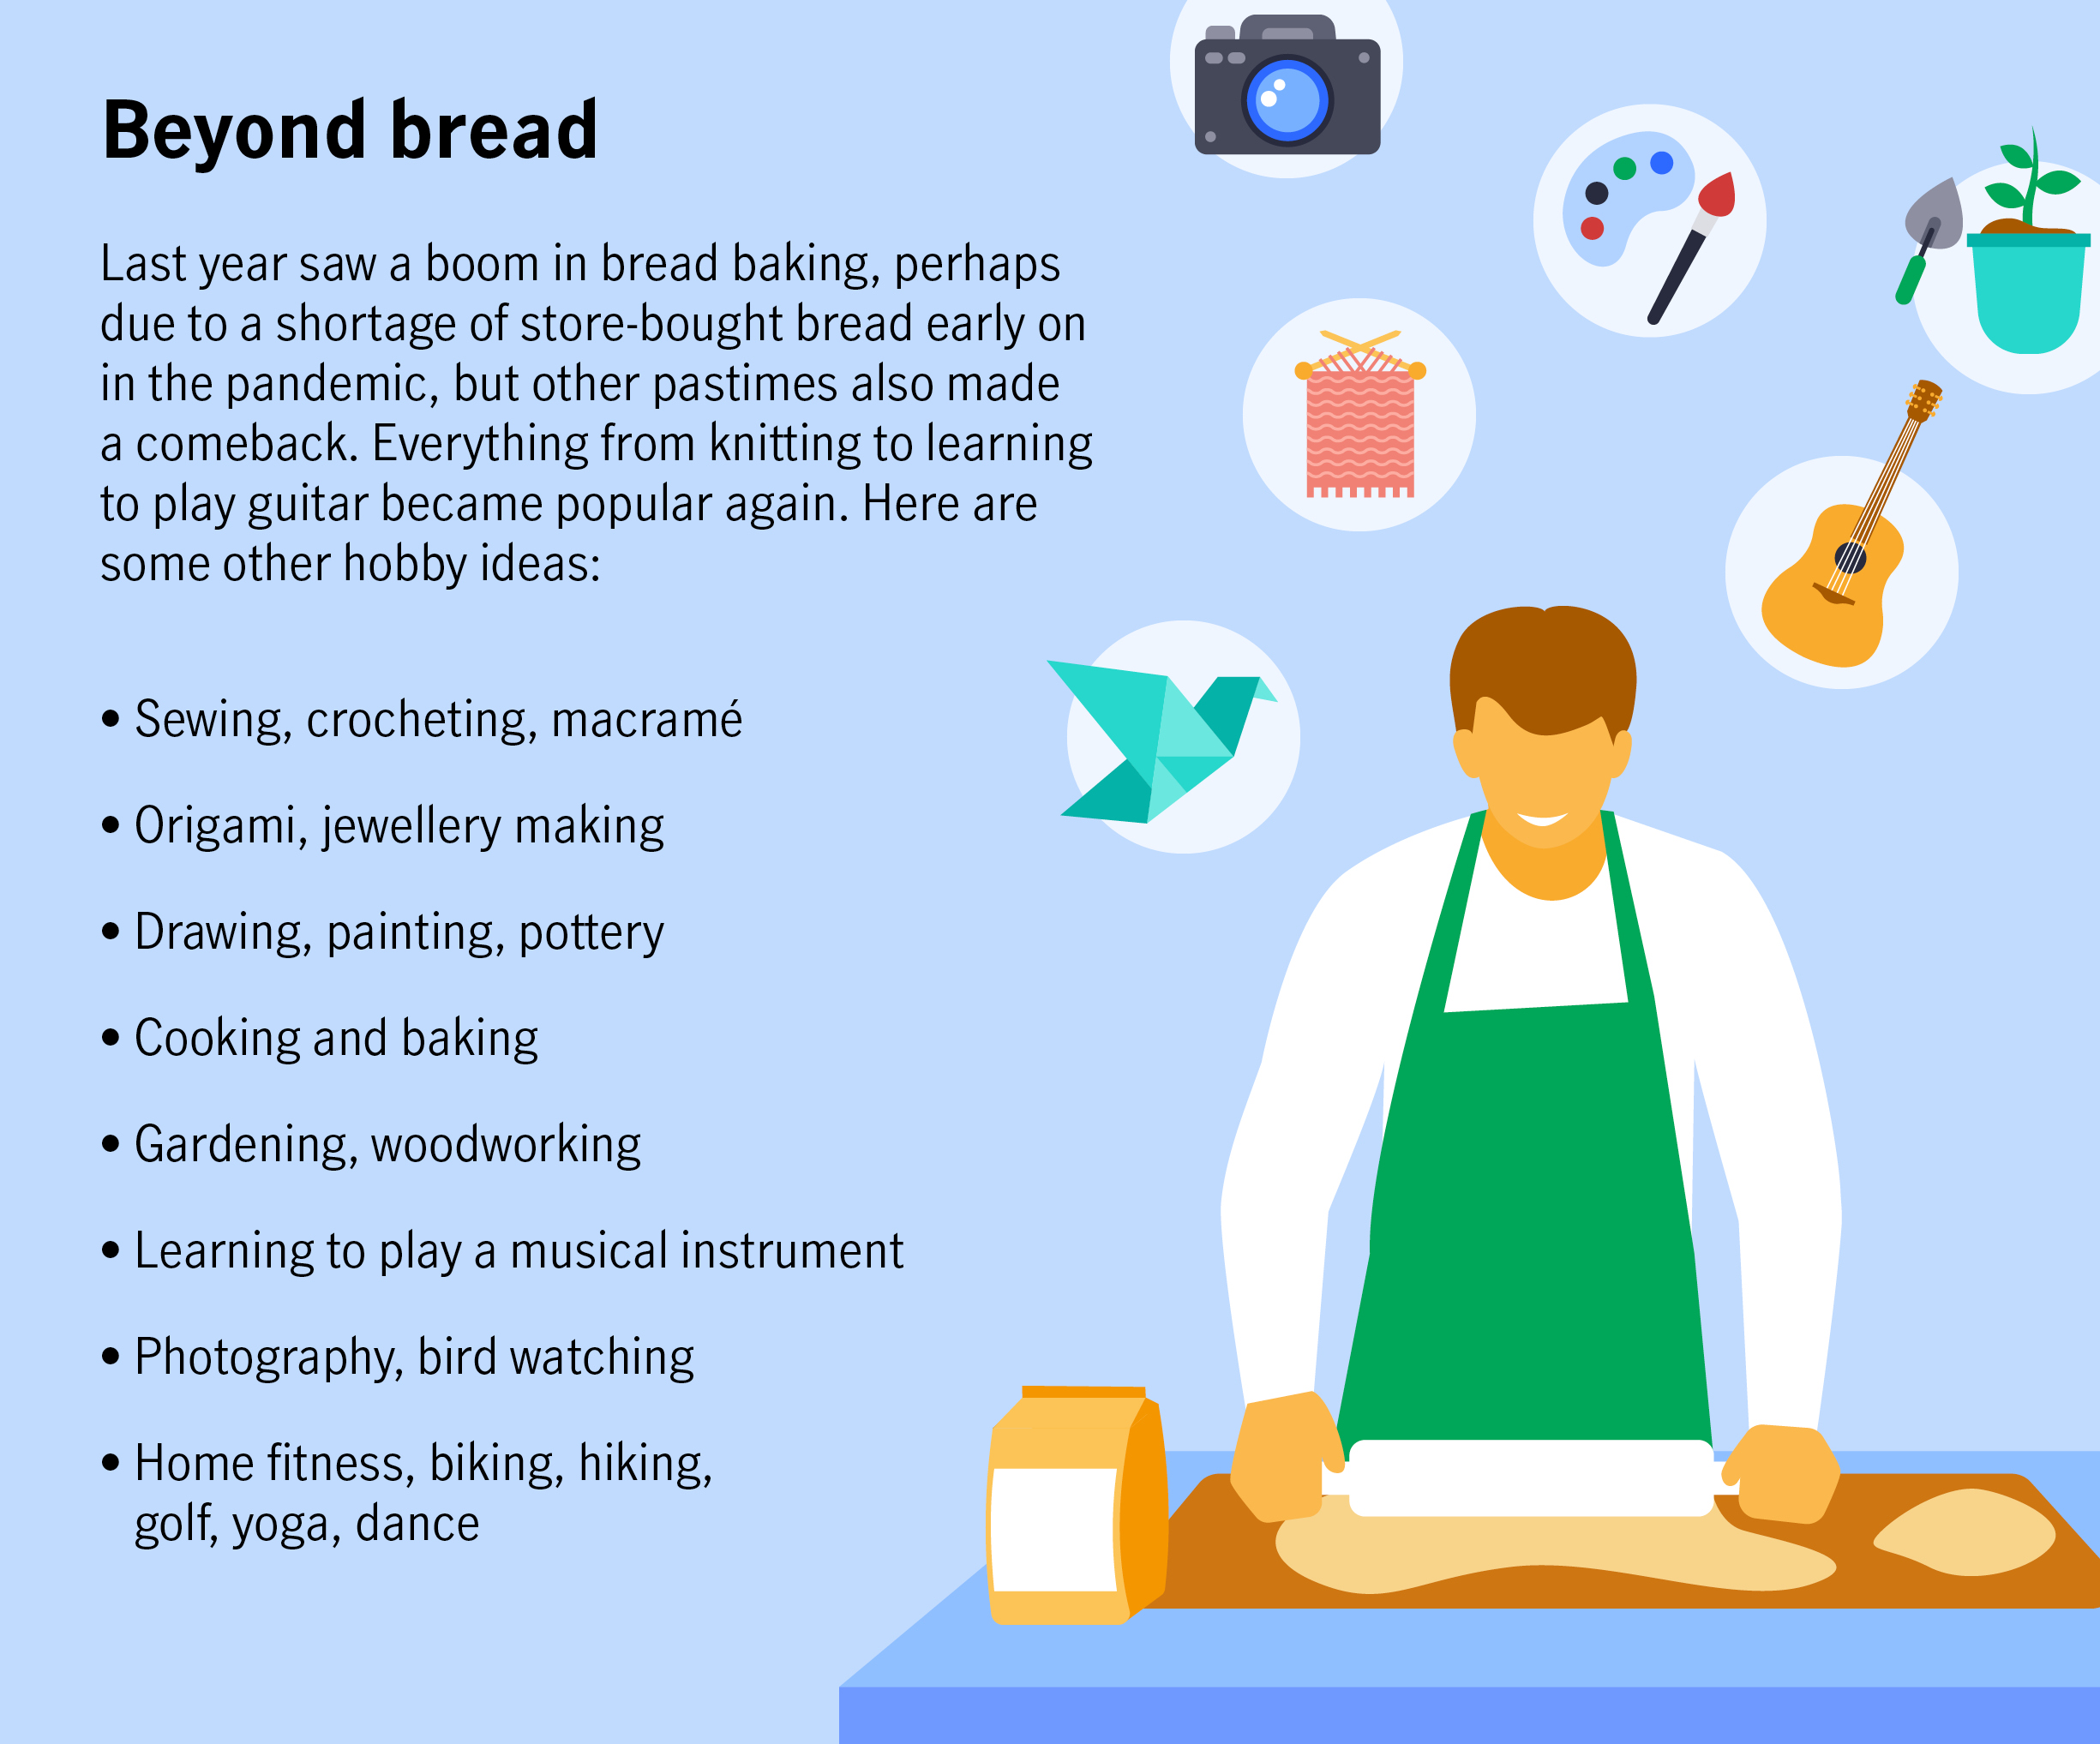 Beyond bread Last year saw a boom in bread baking, perhaps due to a shortage of store-bought bread early on in the pandemic, but other pastimes also made a comeback. Everything from knitting to learning to play guitar became popular again. Here are some other hobby ideas:  Sewing, crocheting, macramé Origami, jewellery making Drawing, painting, pottery Cooking and baking Gardening, woodworking Learning to play a musical instrument Photography, bird watching Home fitness, biking, hiking, golf, yoga, dance